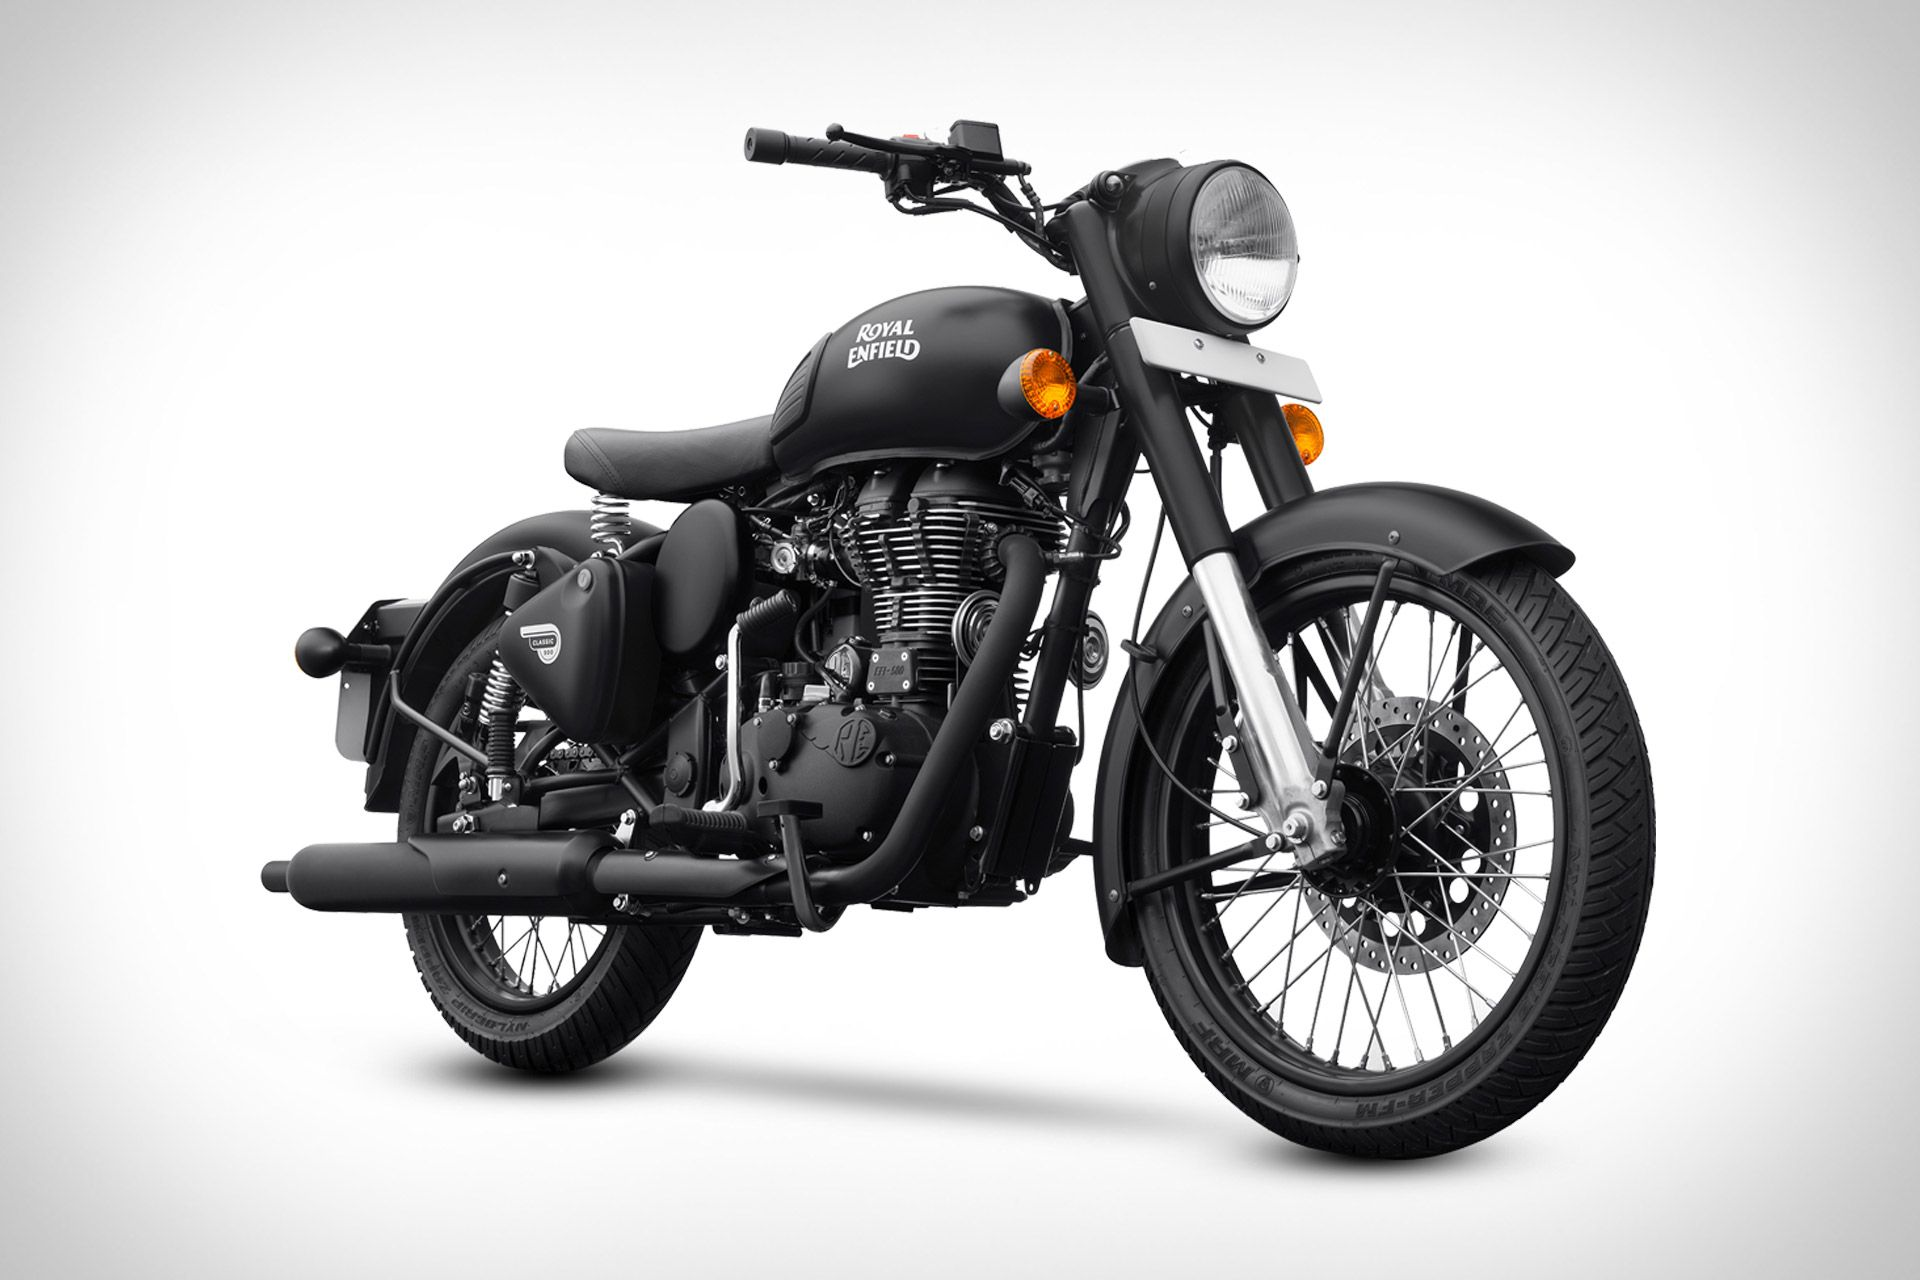 Royal Enfield Classic 500 Stealth Black Motorcycle In 2020 Enfield Classic Royal Enfield Enfield Motorcycle